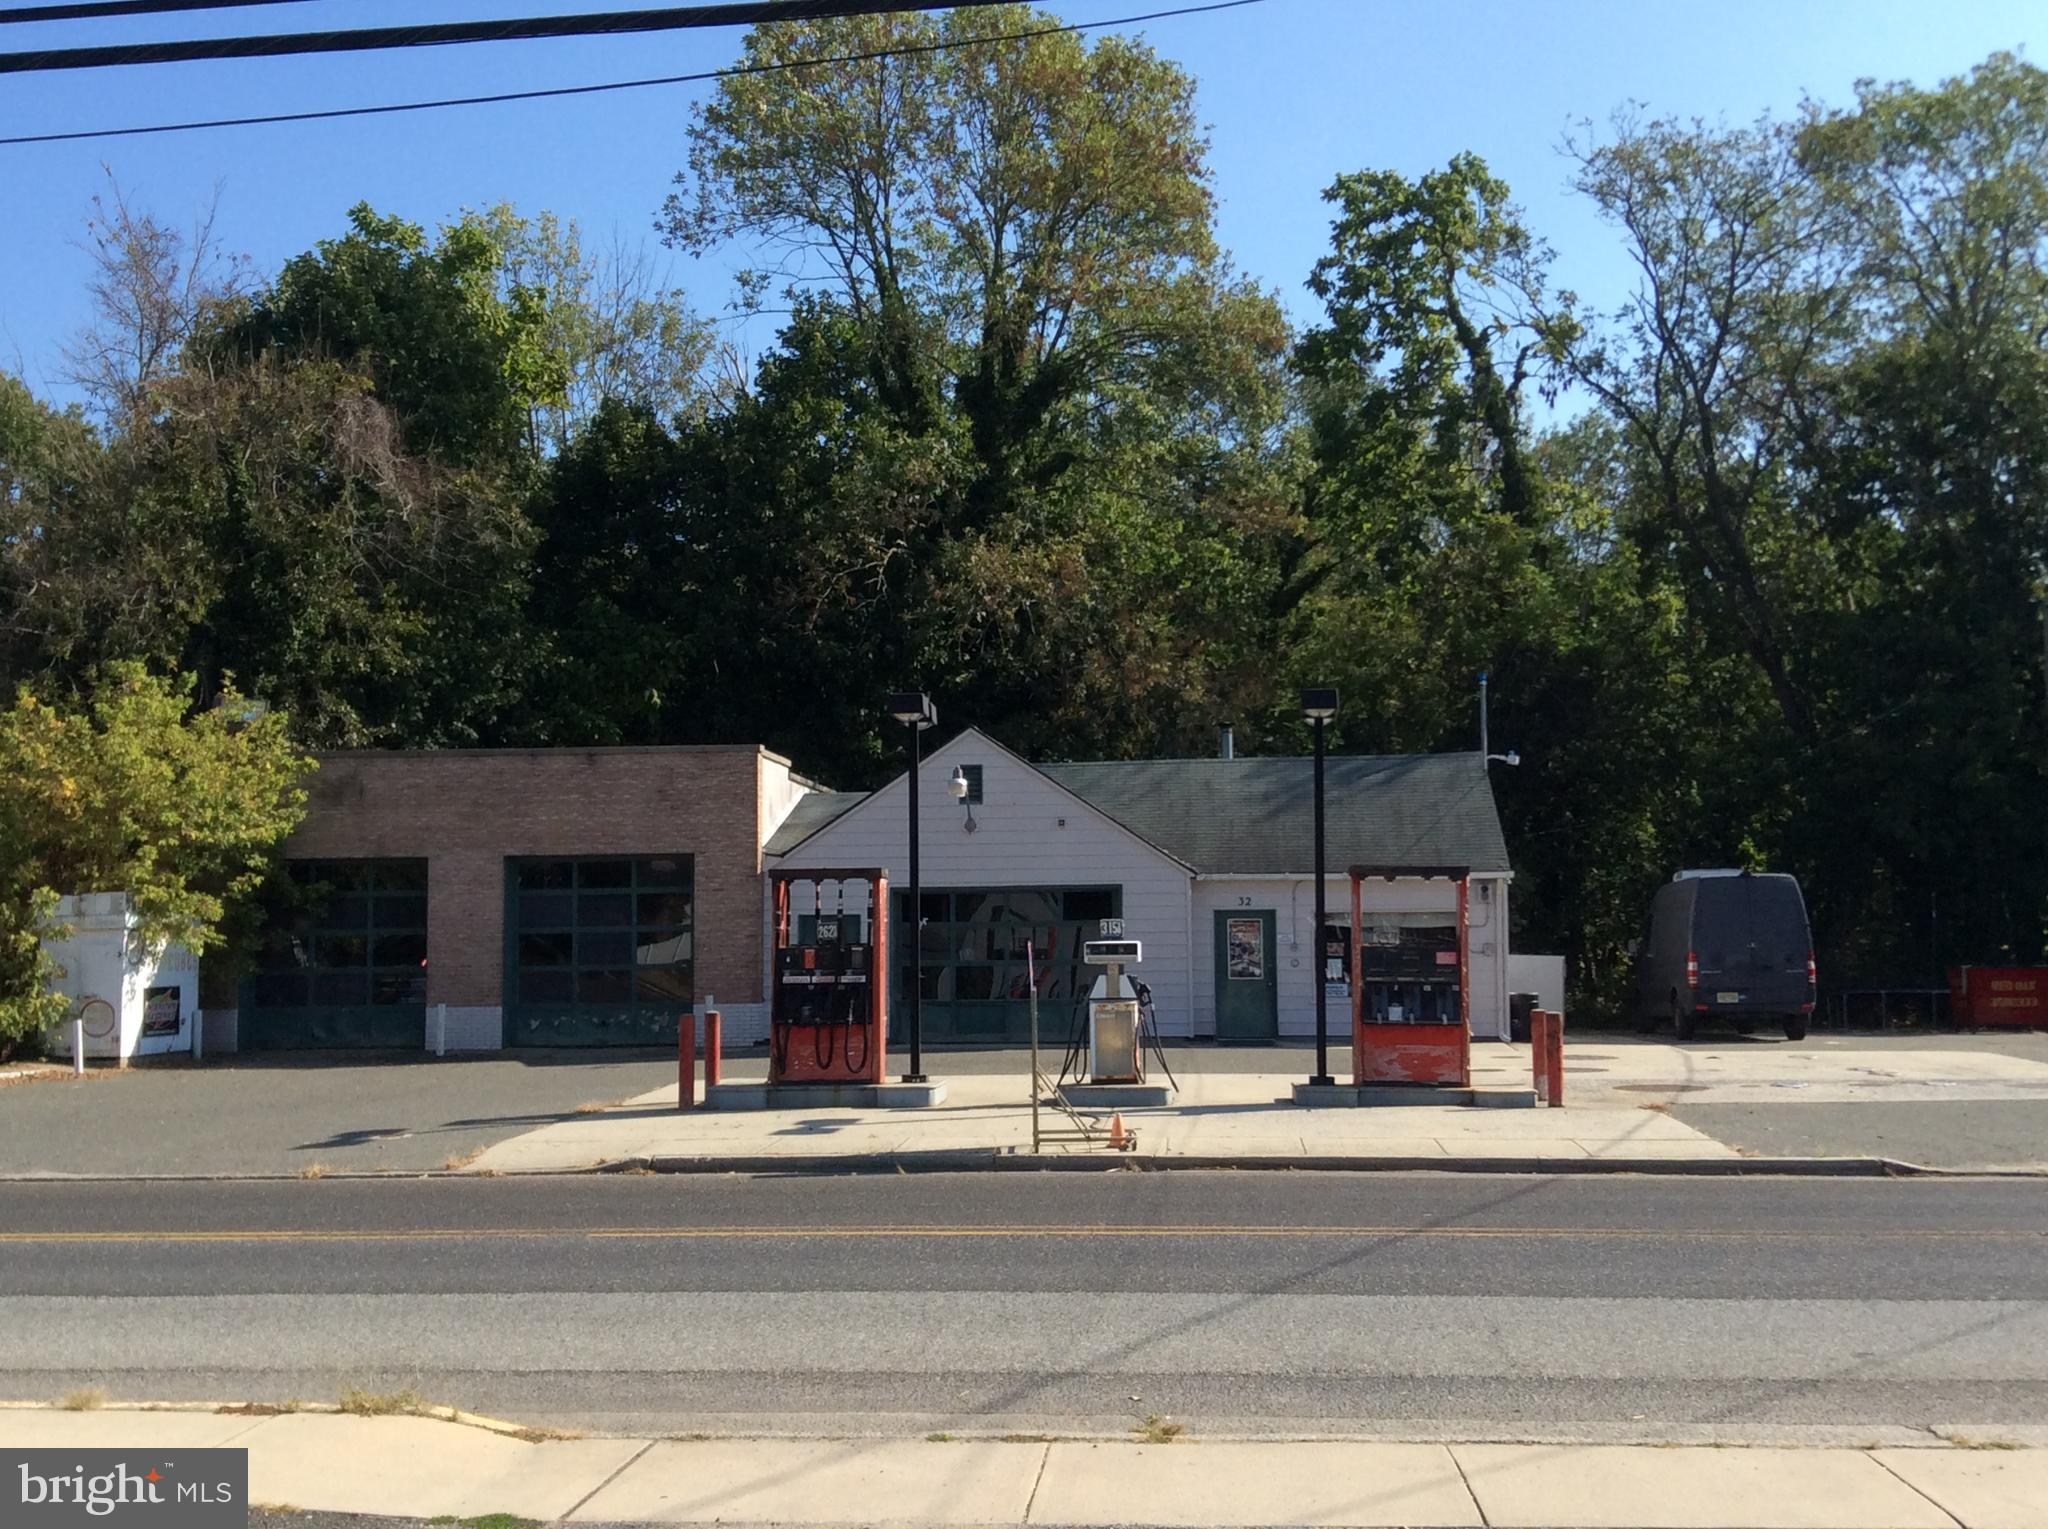 32 S GREENWICH STREET, ALLOWAY, NJ 08001